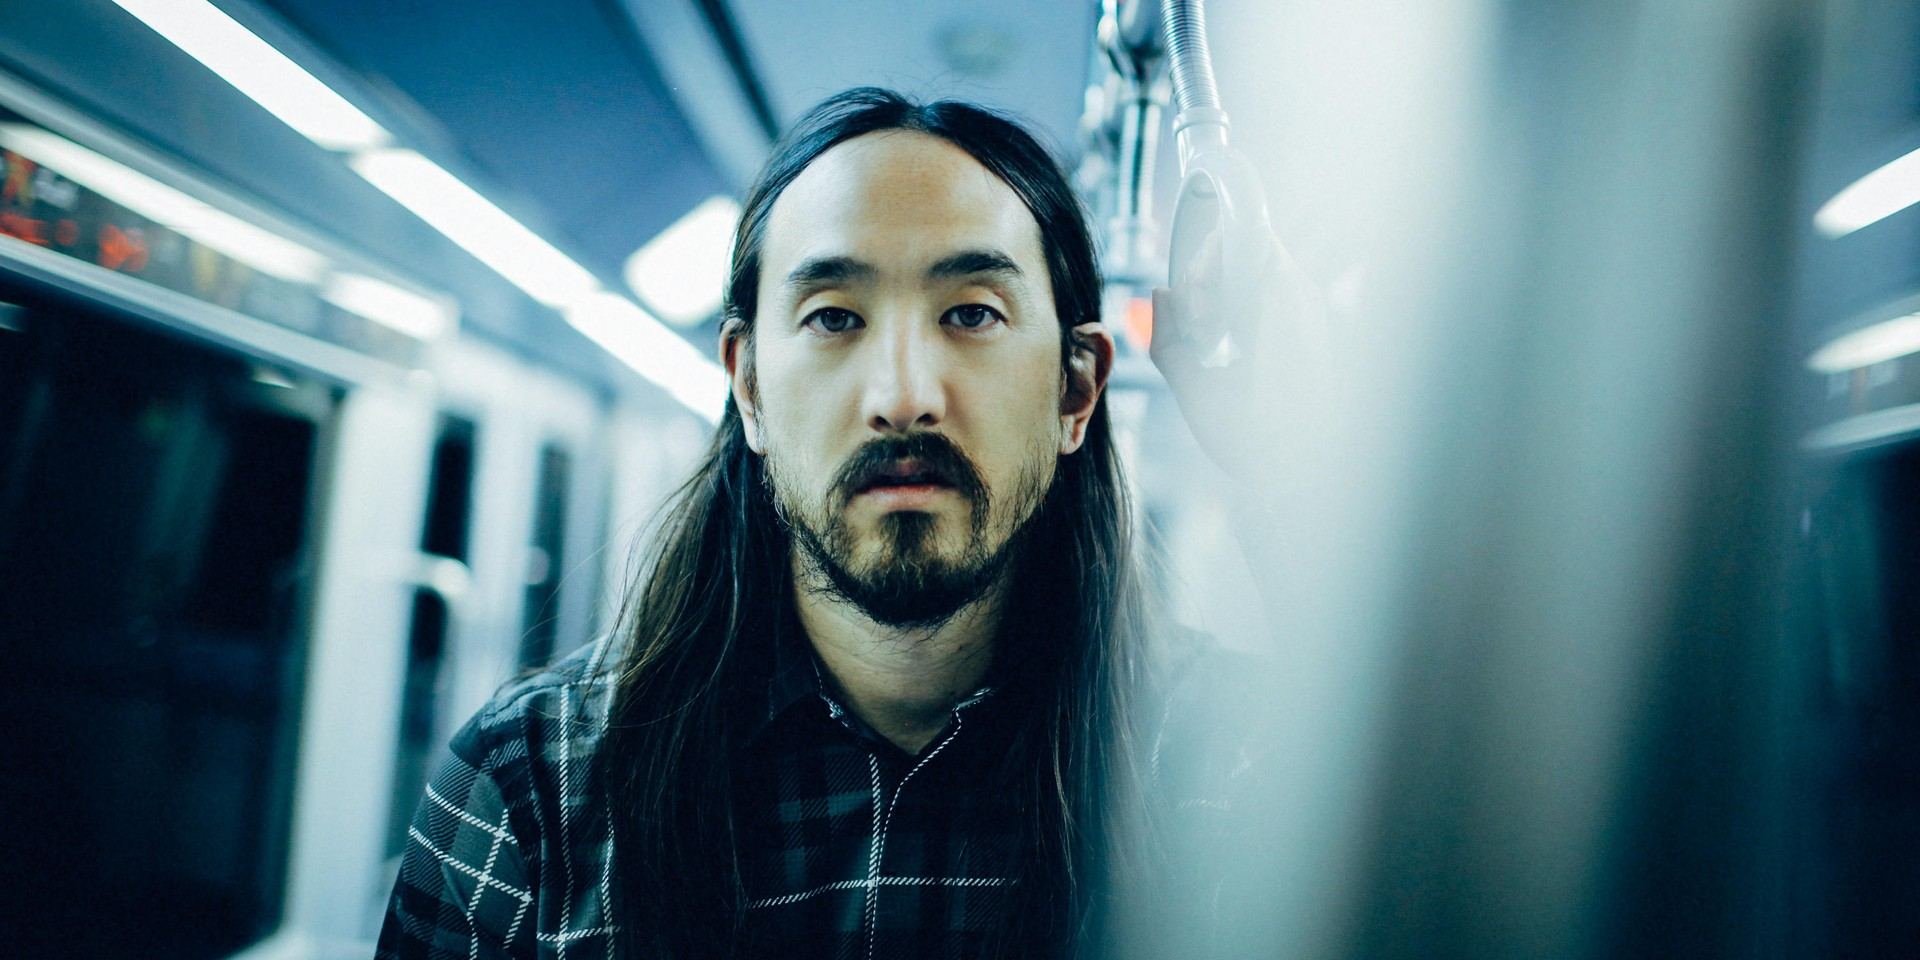 Steve Aoki to perform at Marquee Singapore this January